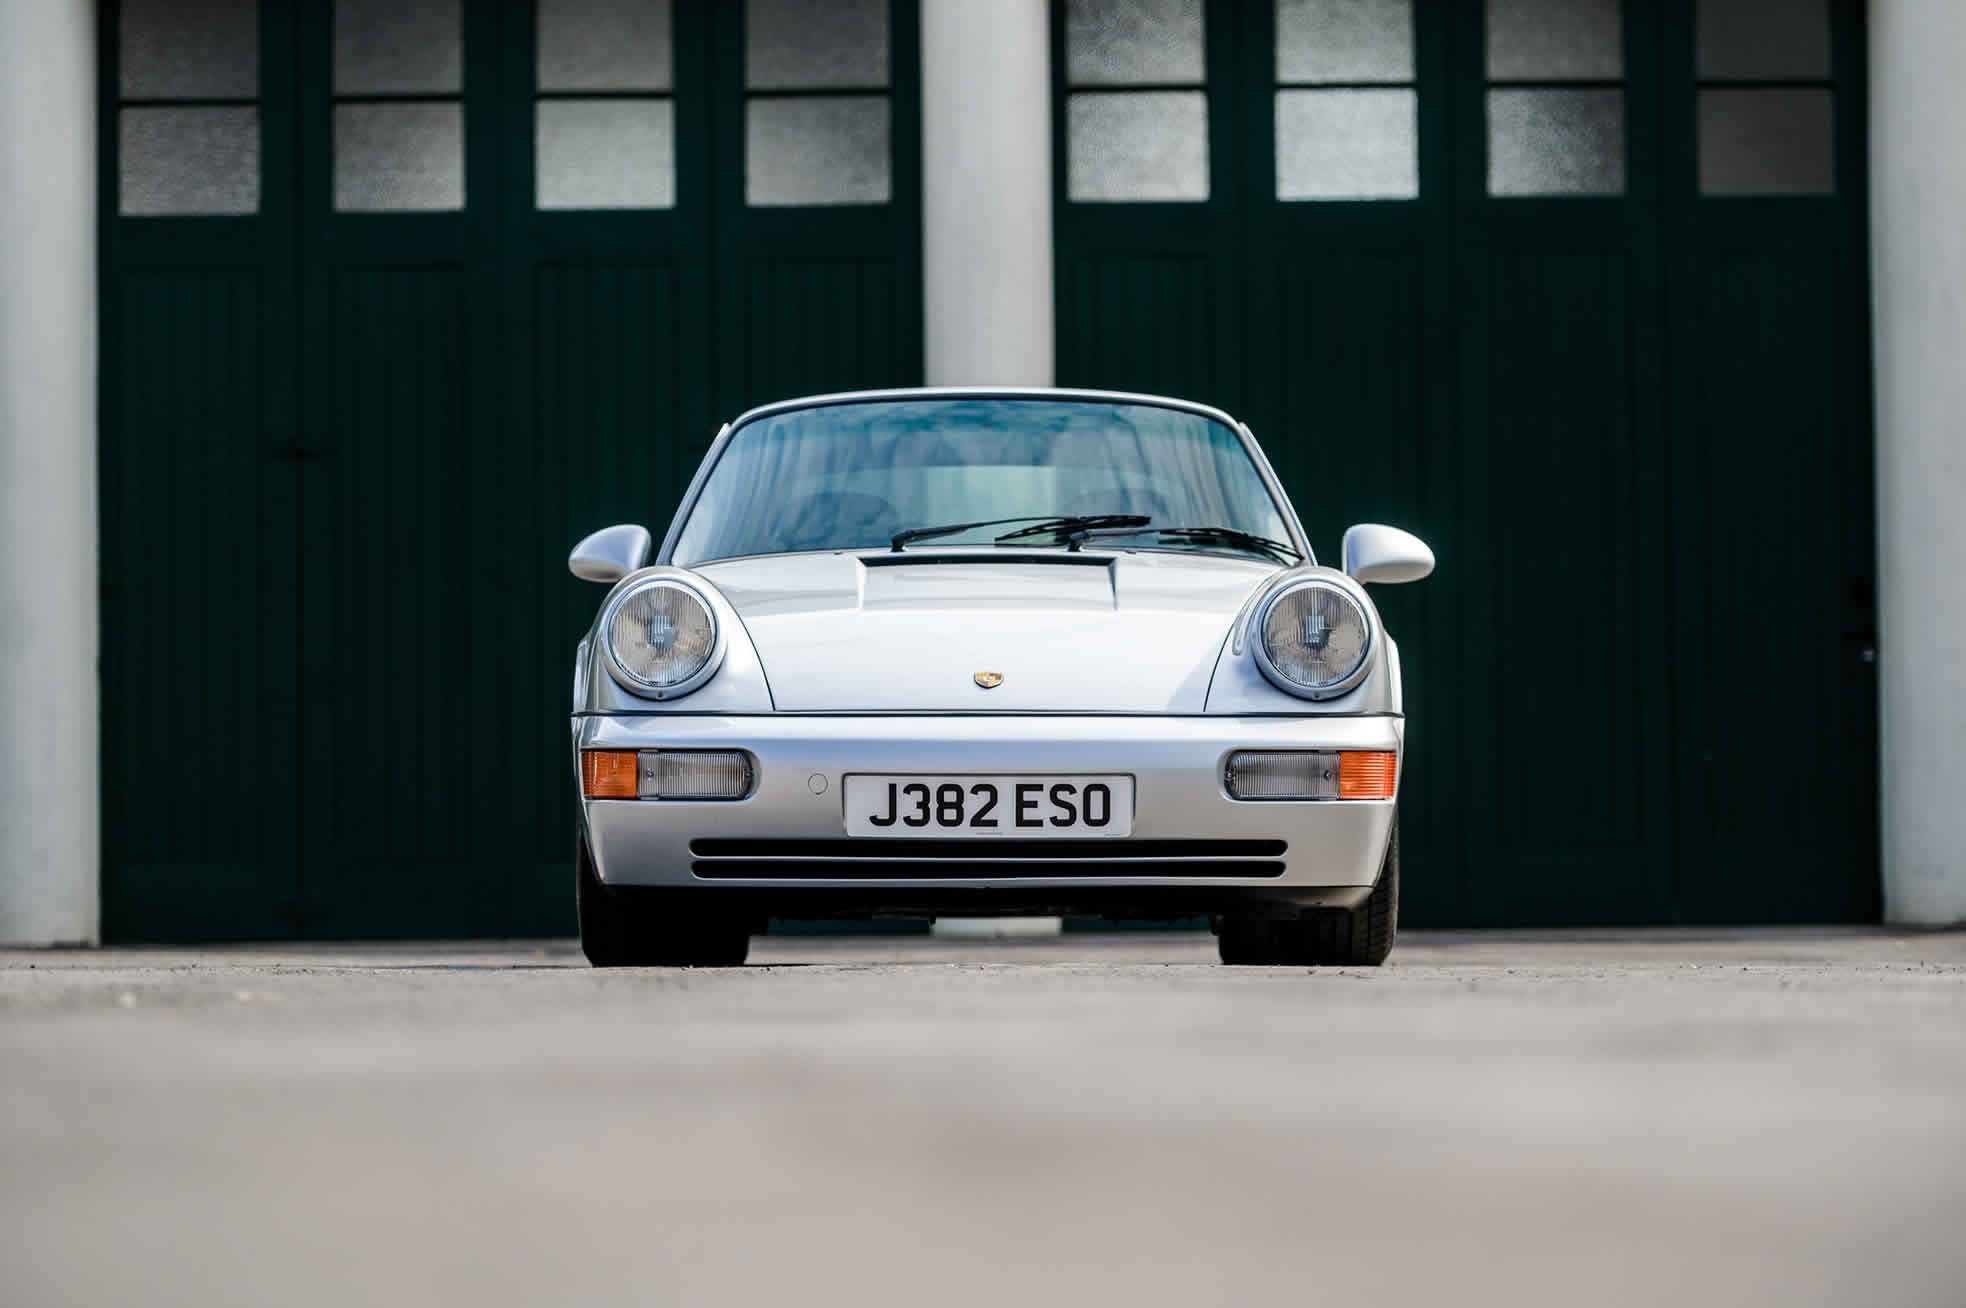 1992 Porsche 964 RS (LHD), for Sale at Sports Purpose, Bicester Heritage, Oxon